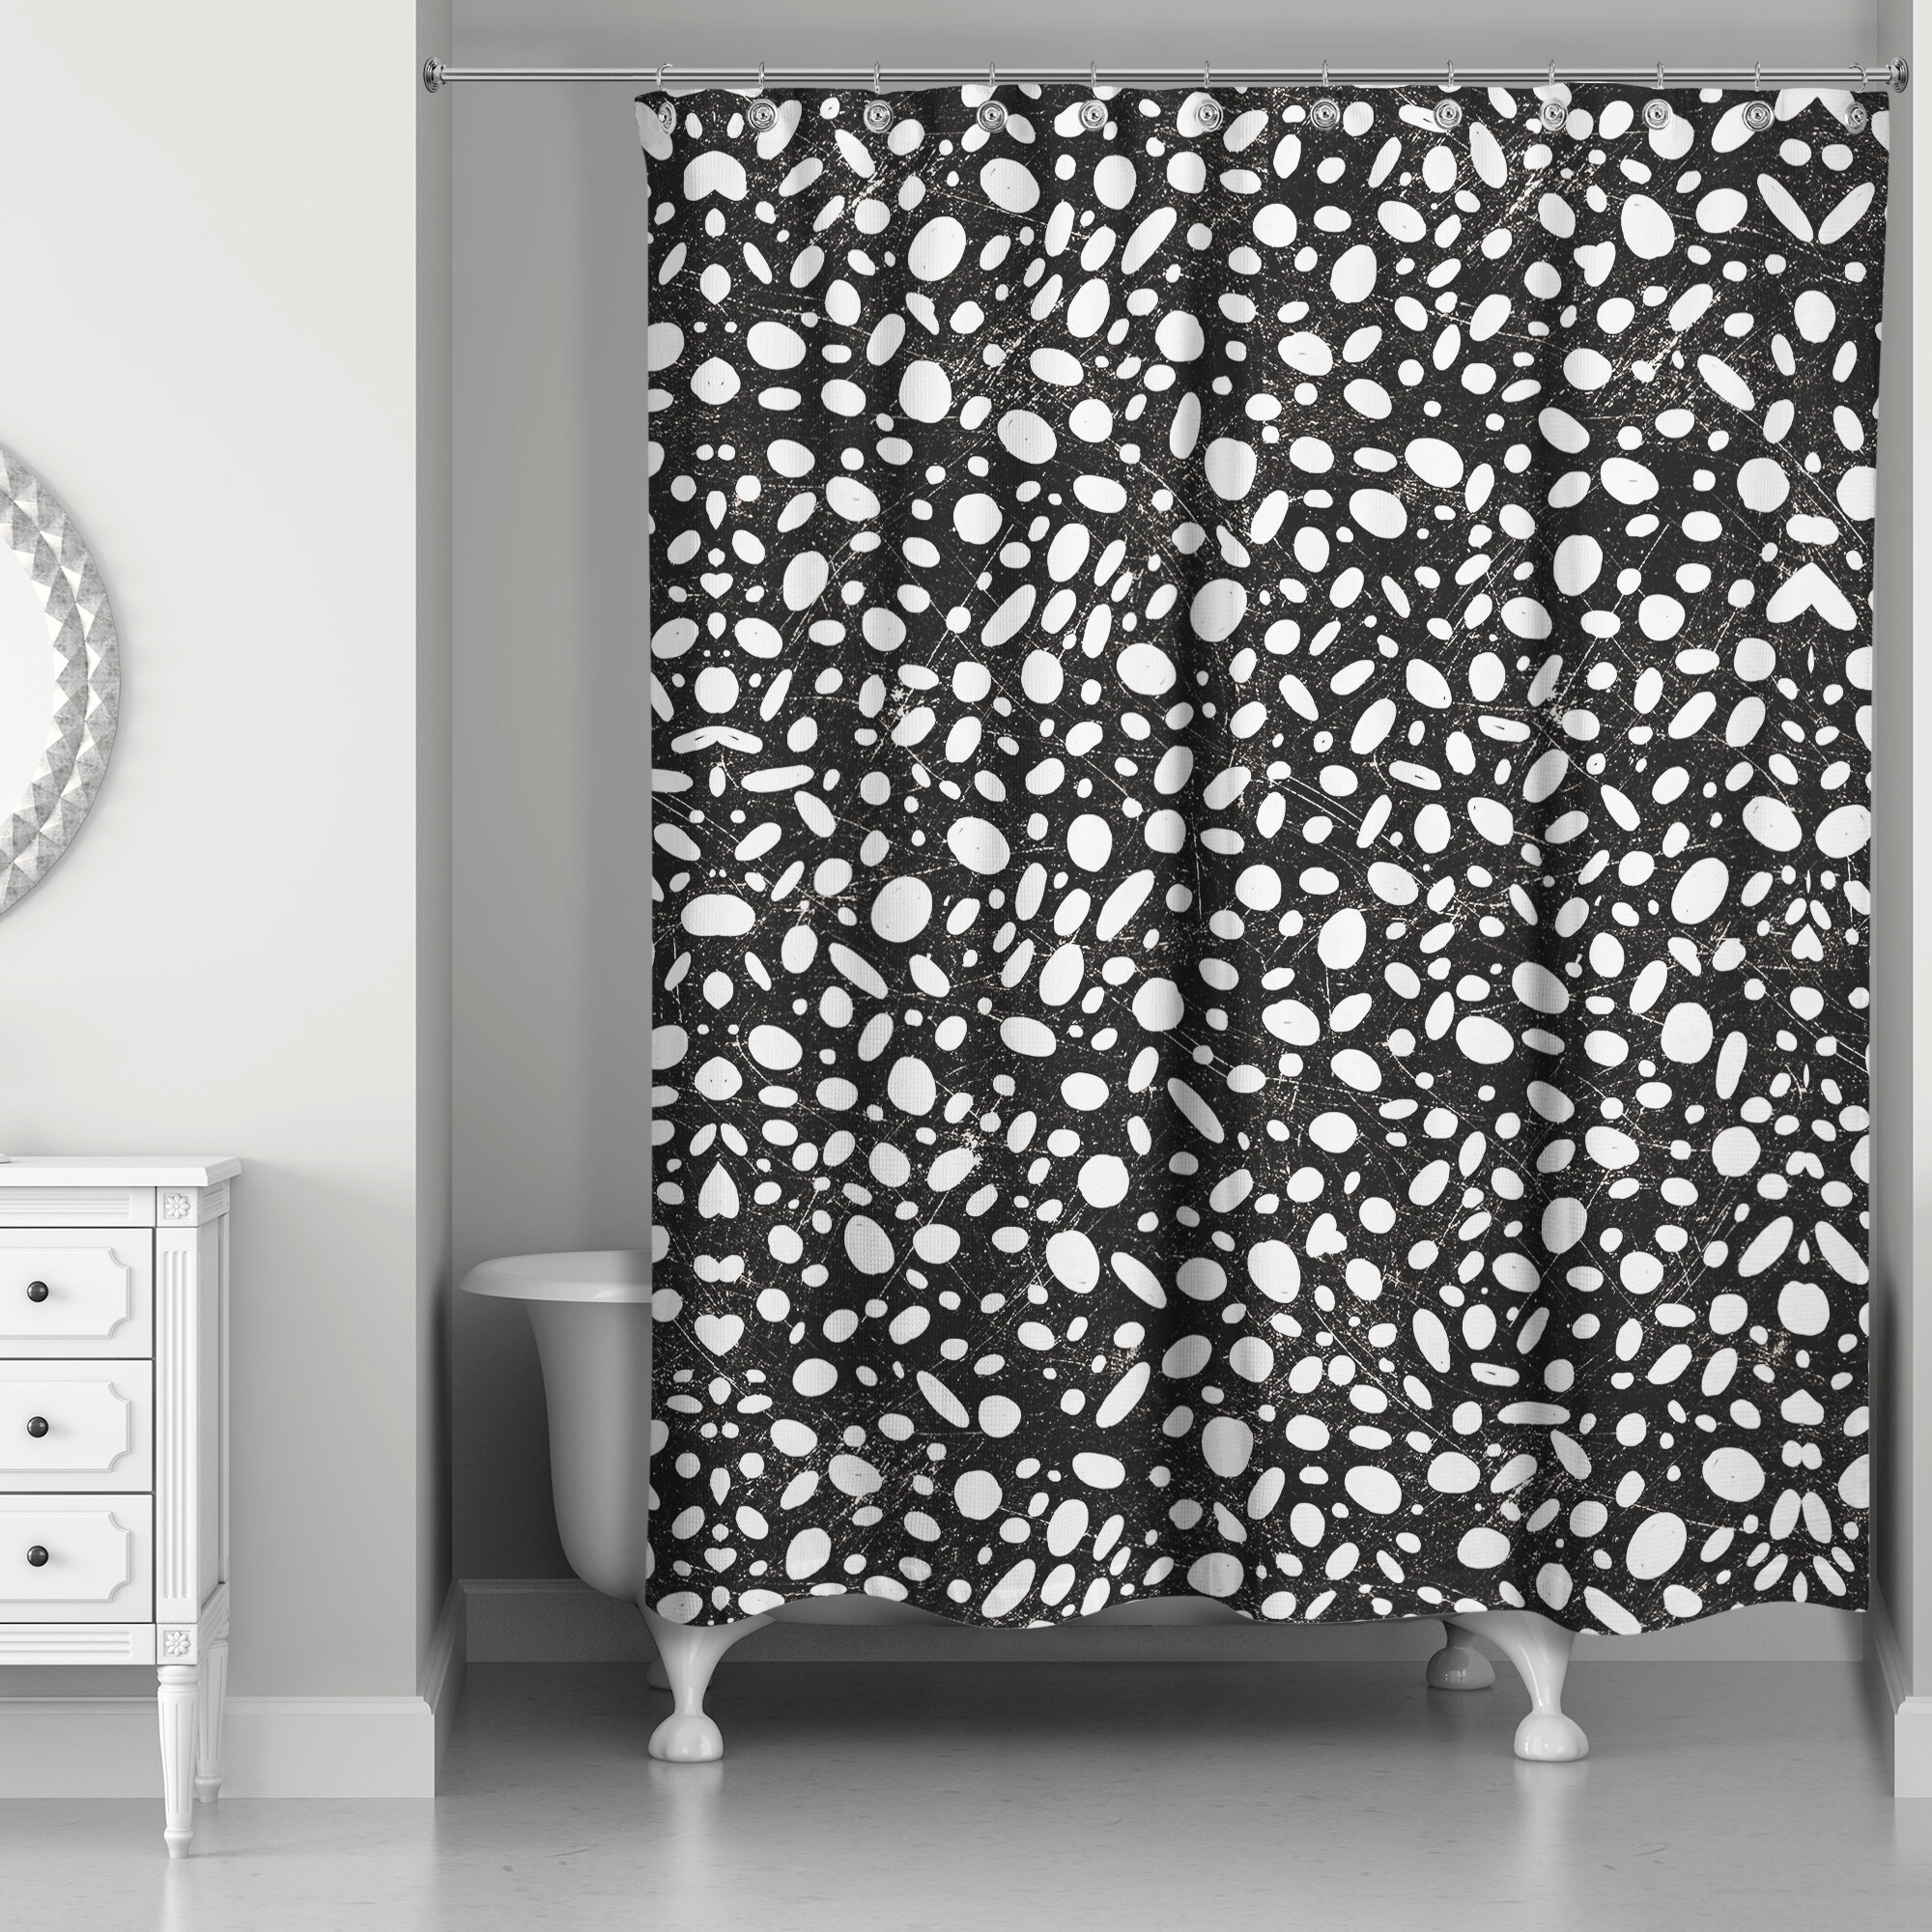 Orren Ellis Pekalongan Pebble Shower Curtain